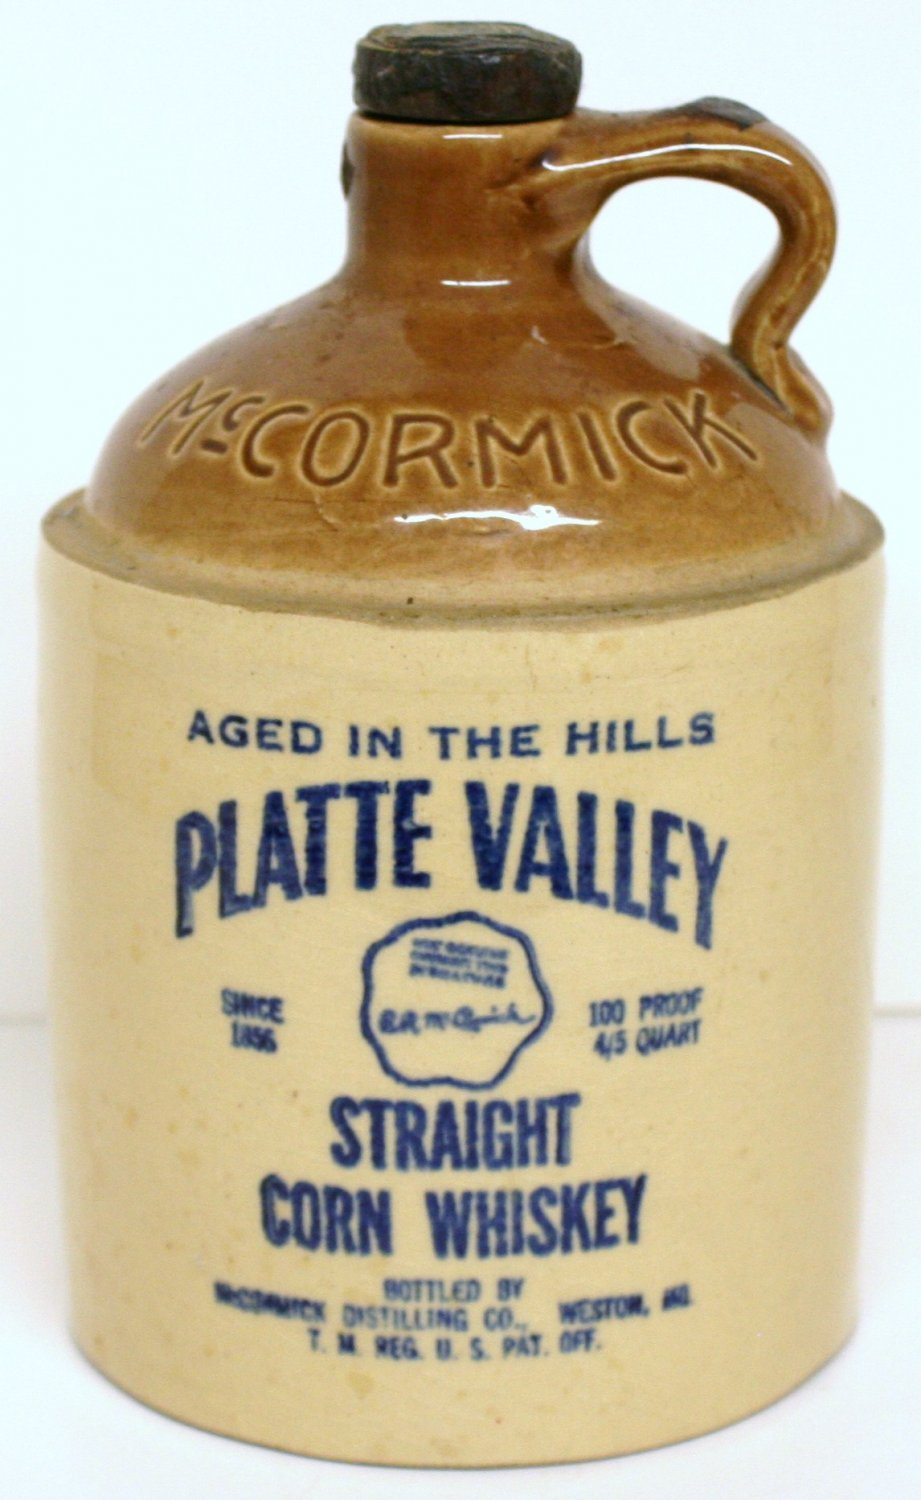 MCCORMICK PLATTE VALLEY WHISKEY JUG with CORK